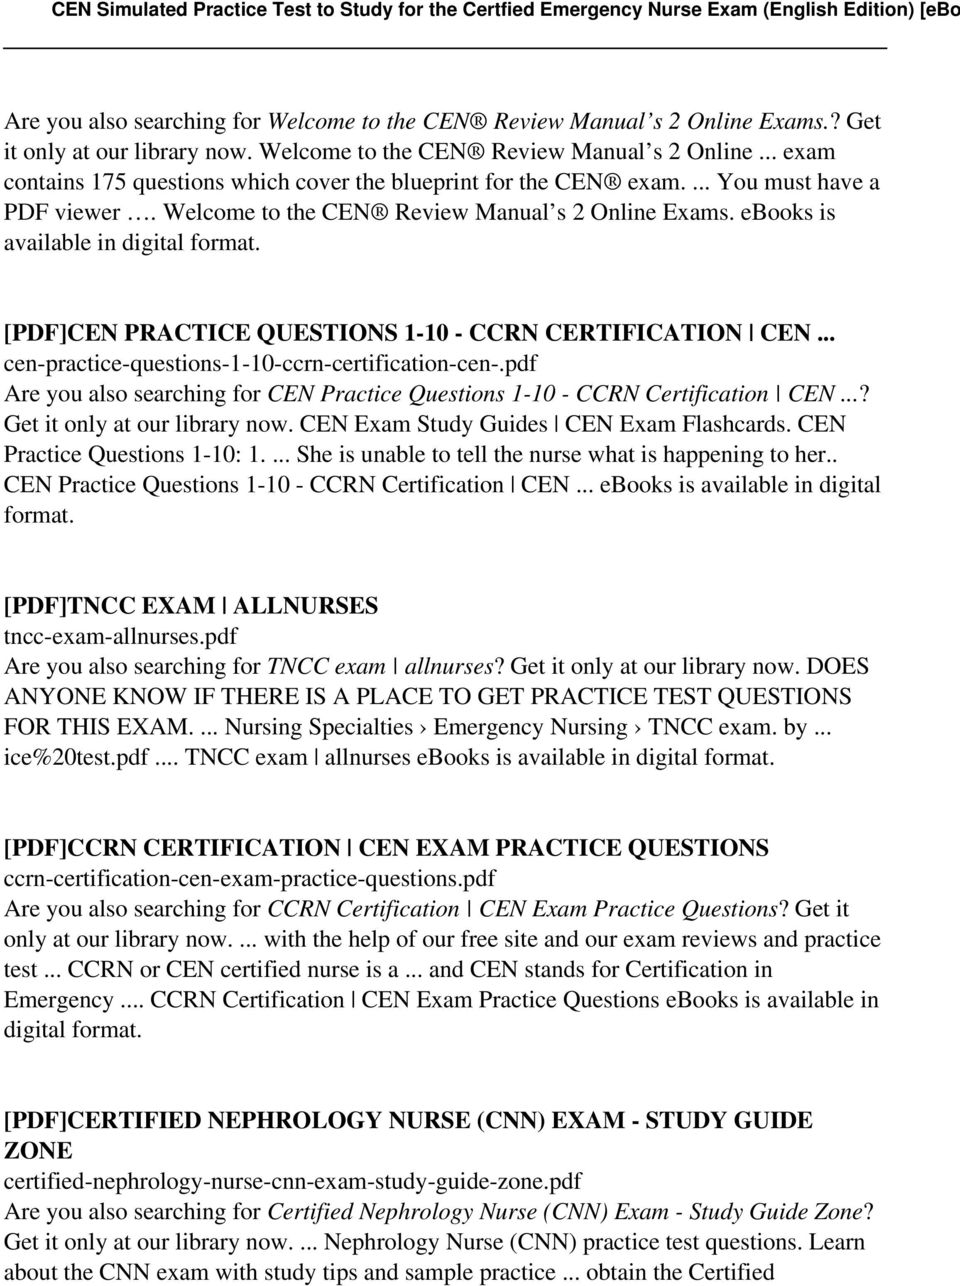 Nephrology study guide array cen simulated practice test to study for the certfied emergency rh docplayer net fandeluxe Image collections